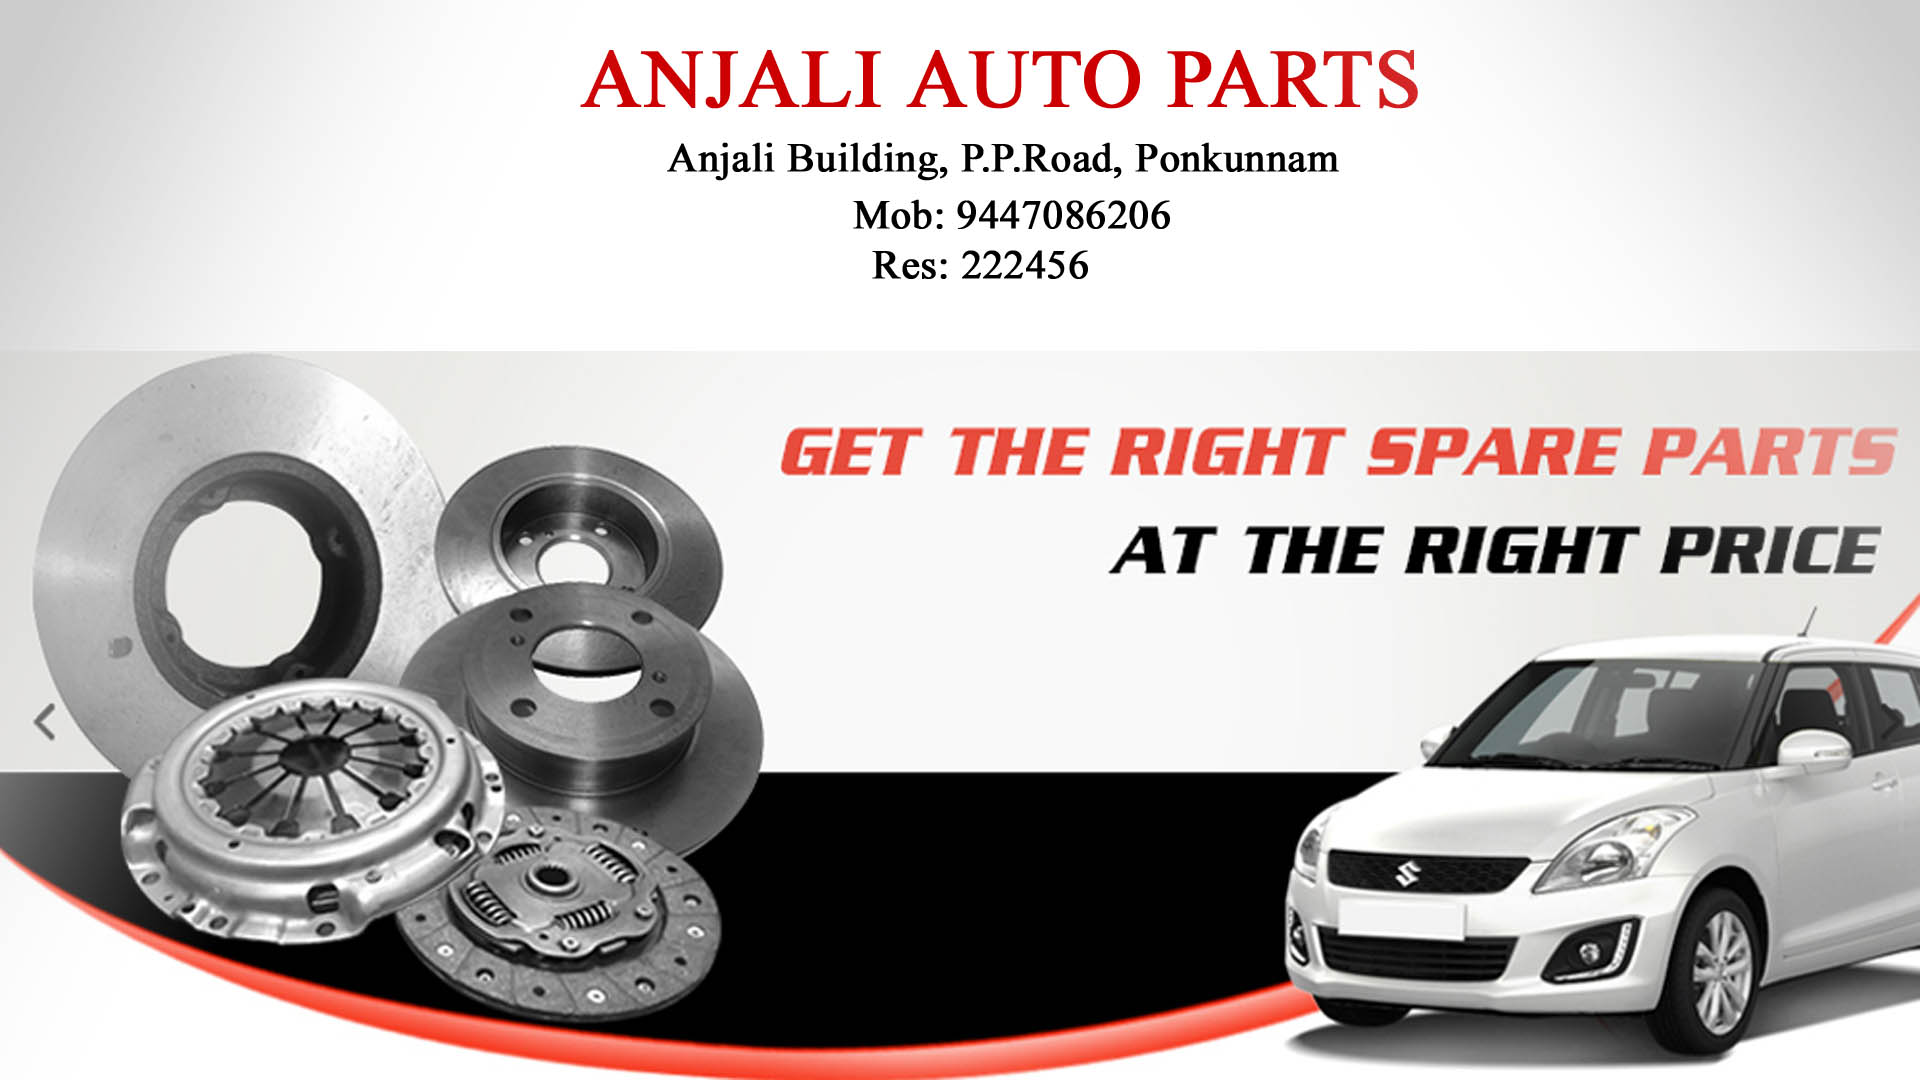 Vehicle spare parts names vehicle ideas for Auto entrepreneur idee